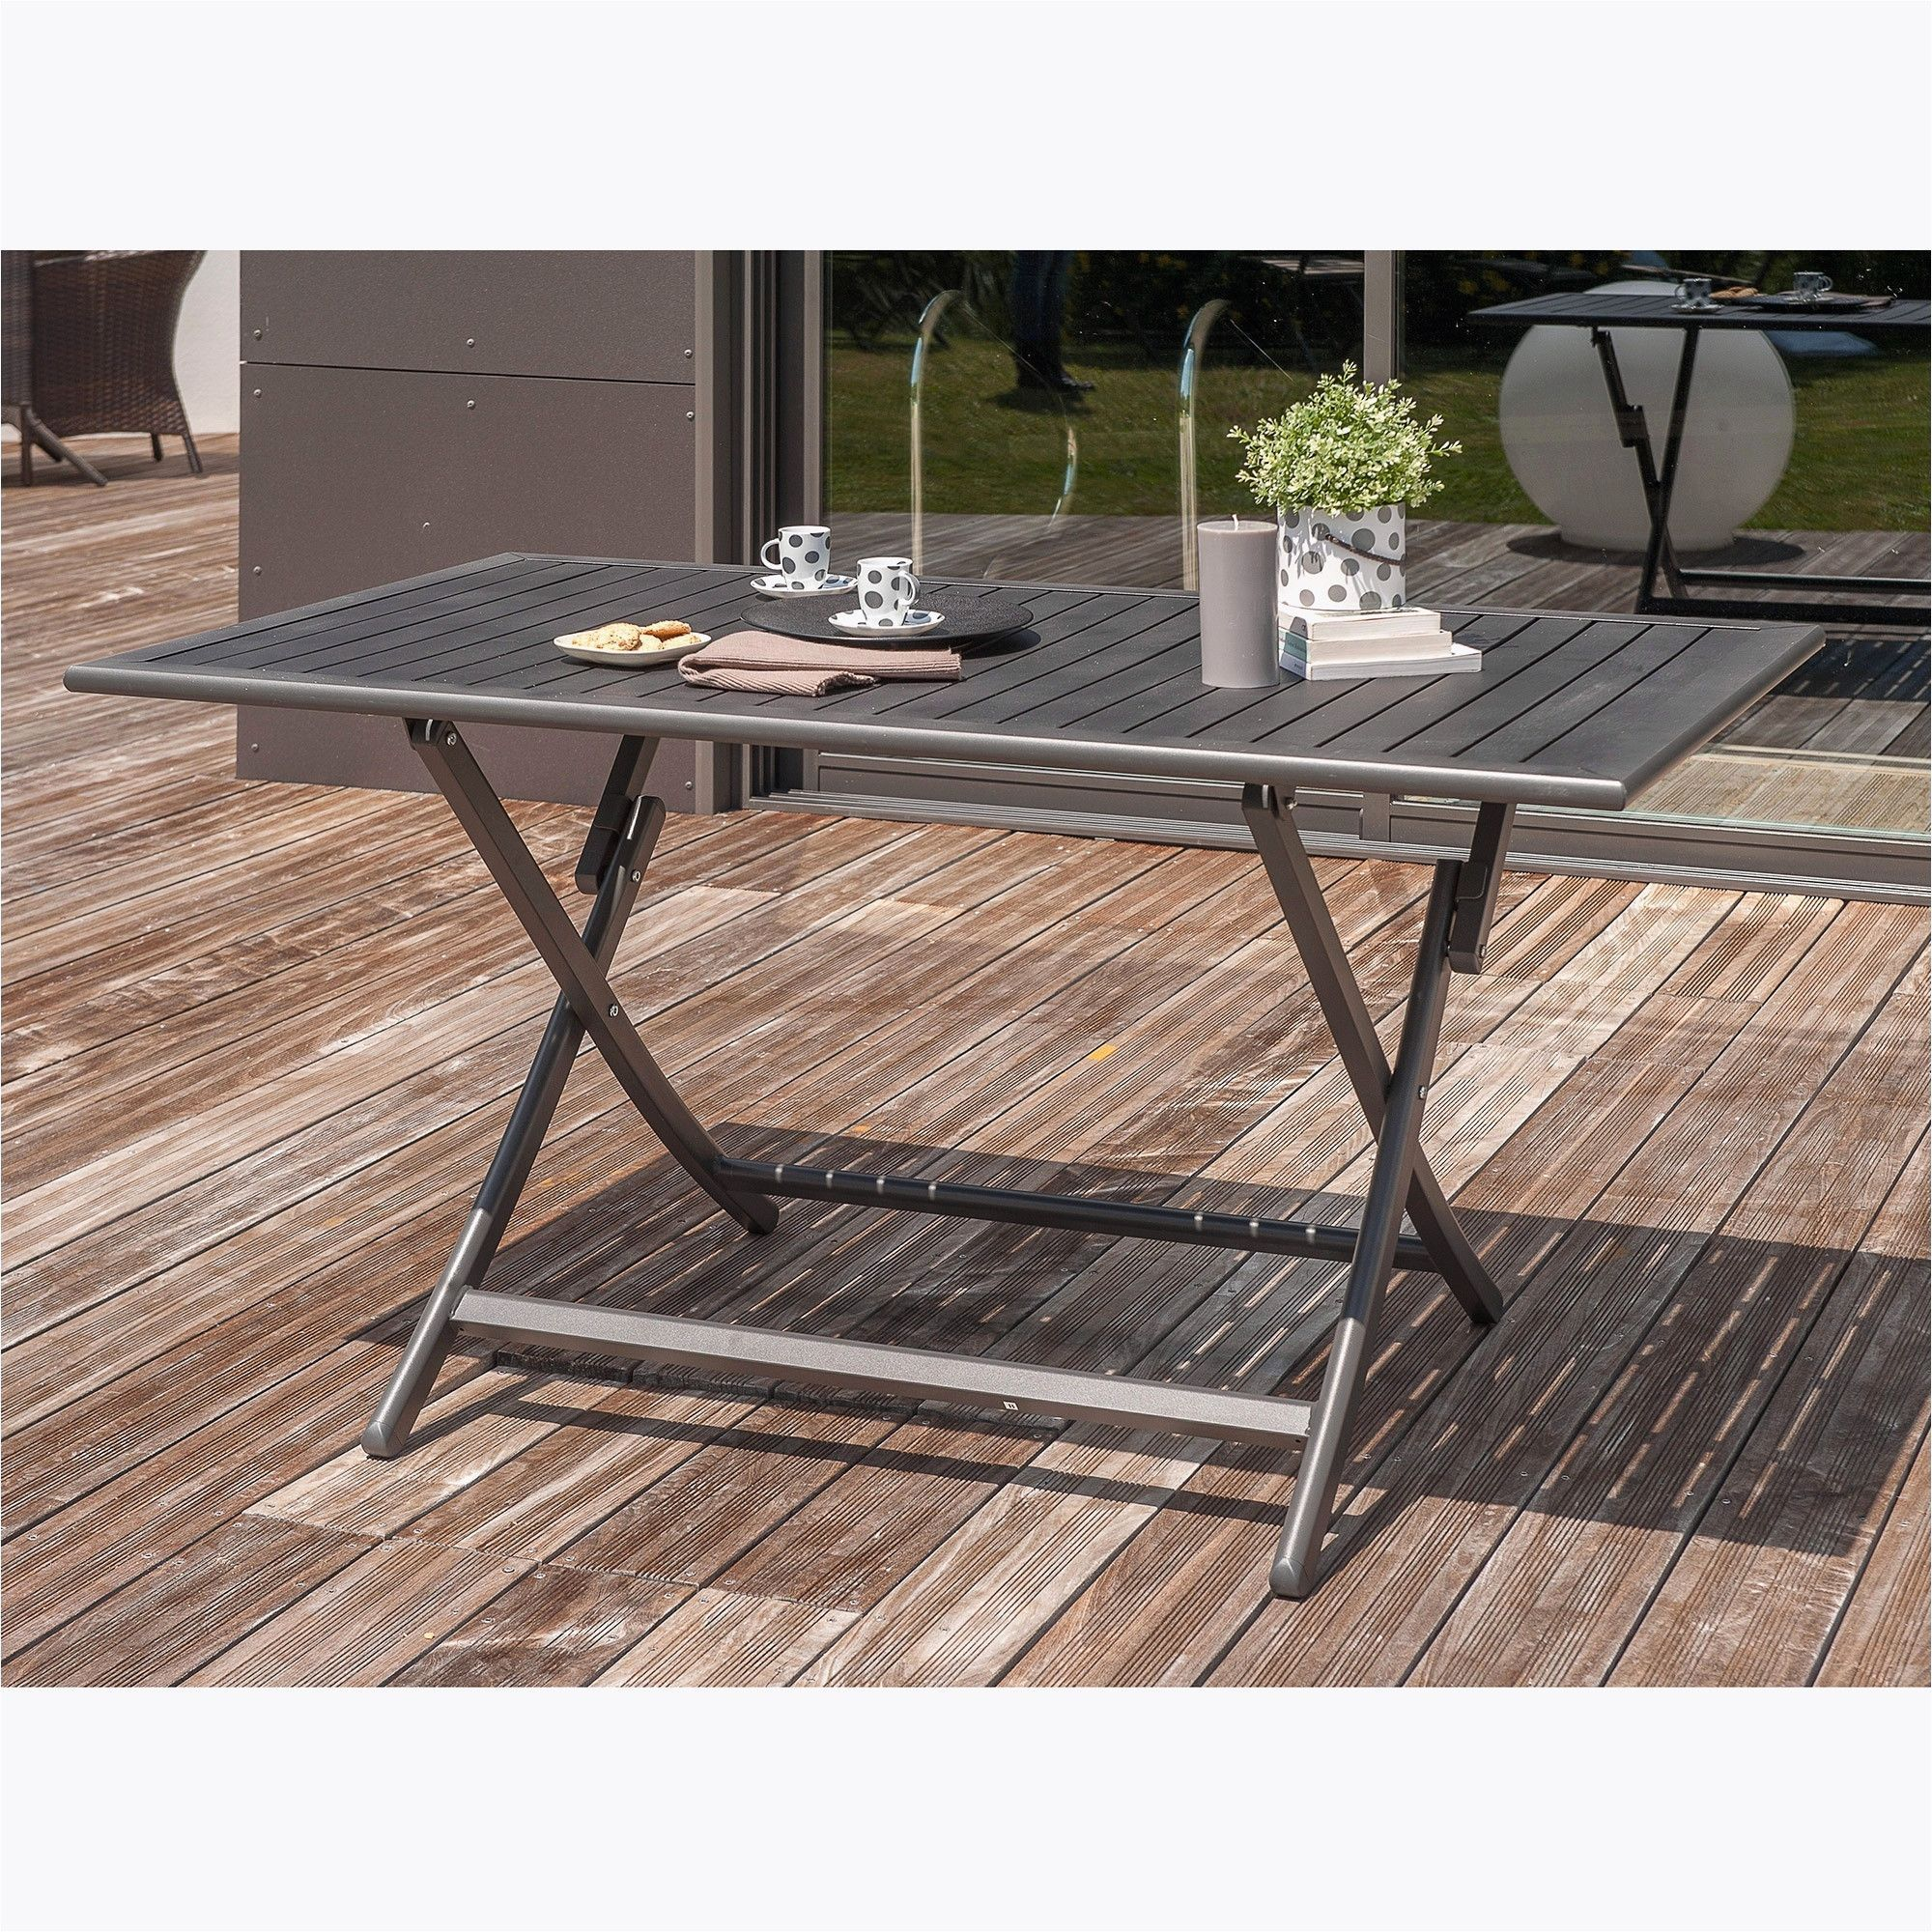 Table Basse De Jardin En Plastique Beau Table Pliante Leclerc Beau S Leclerc Table De Jardin Of 36 Best Of Table Basse De Jardin En Plastique